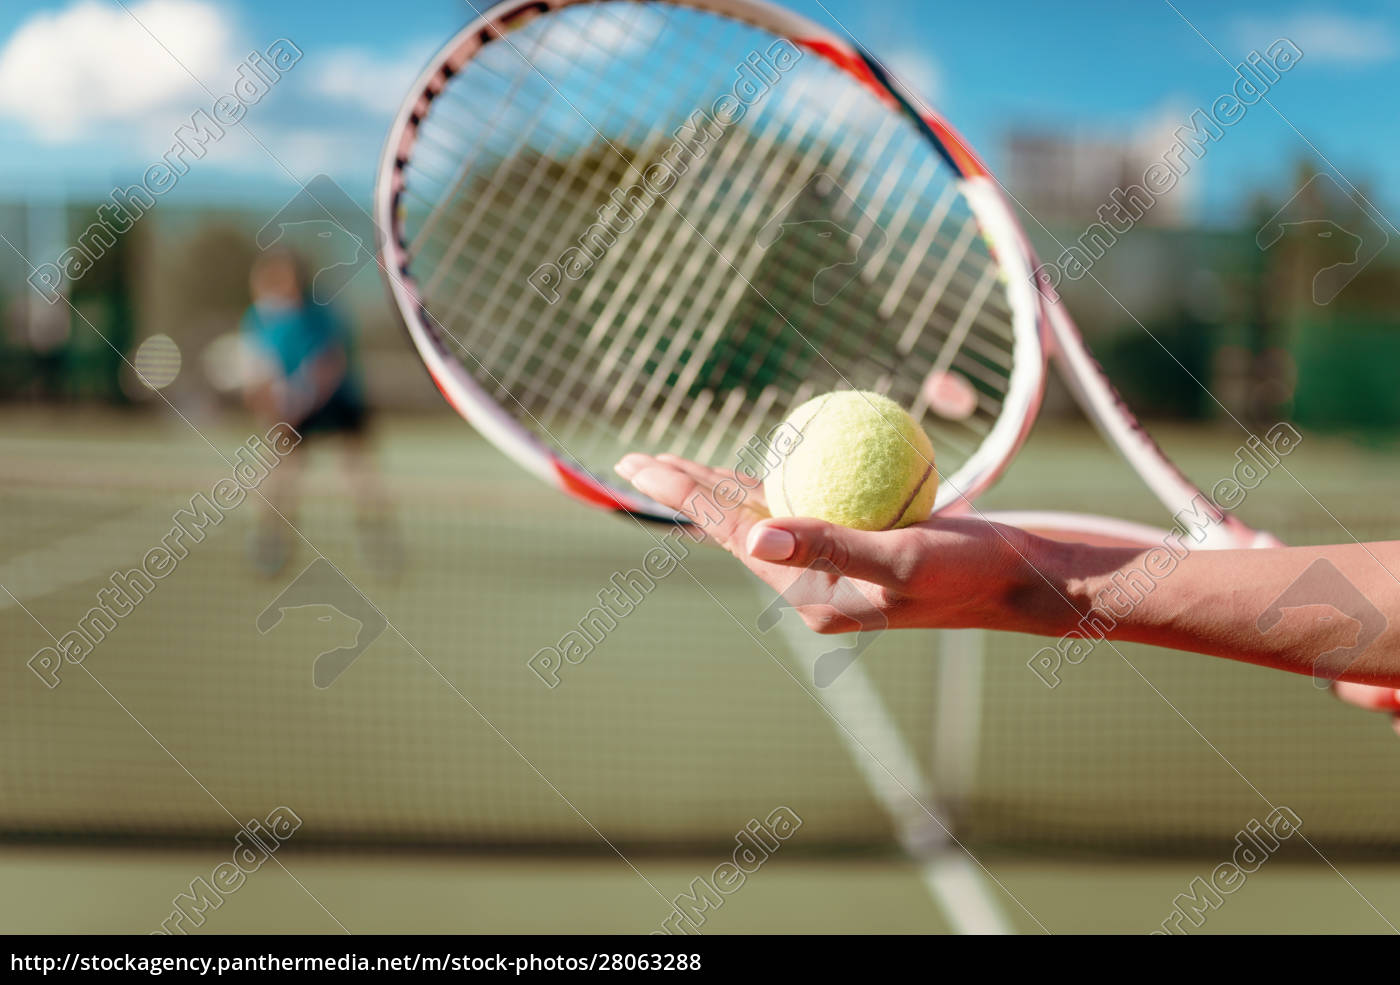 female, hands, with, ball, and, tennis - 28063288